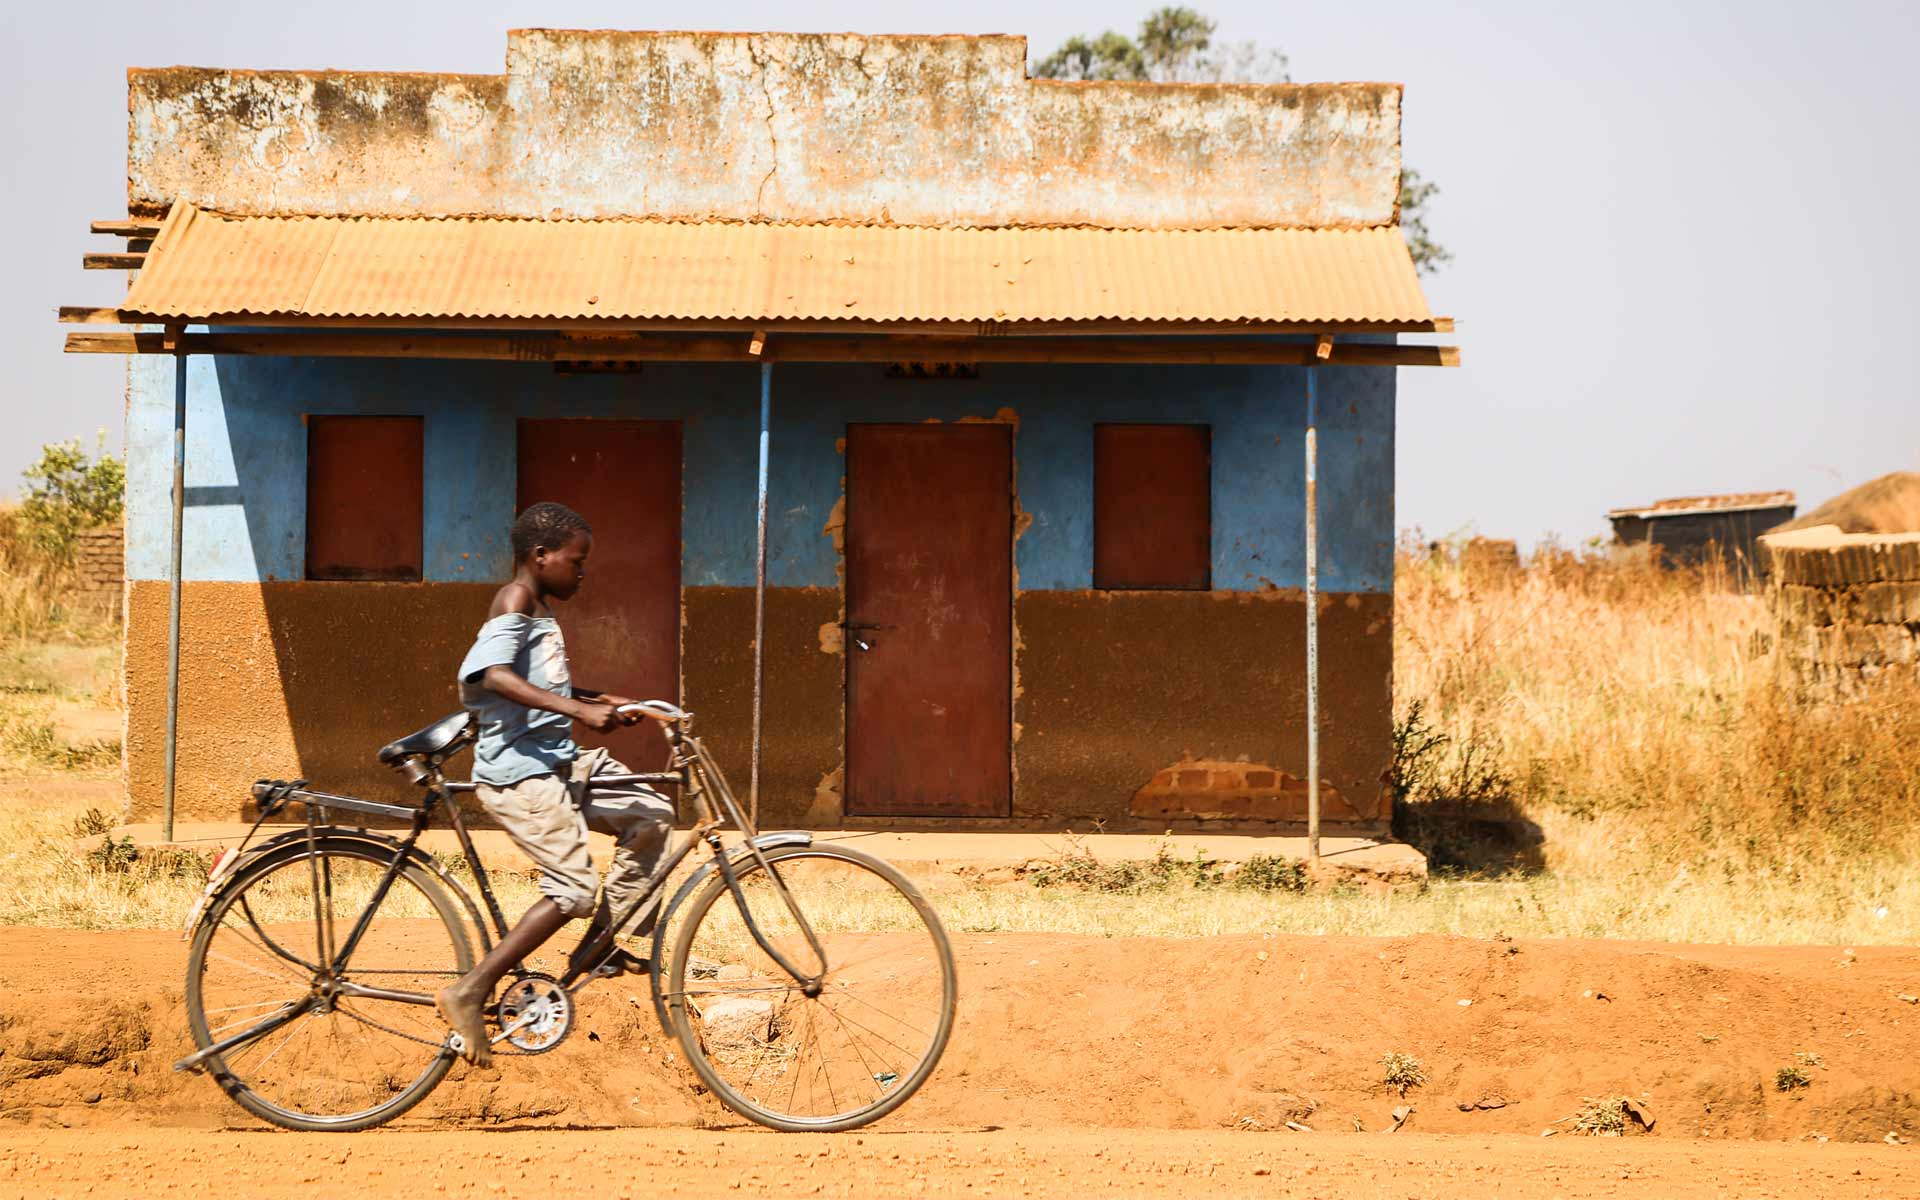 A boy in Uganda riding his bicycle